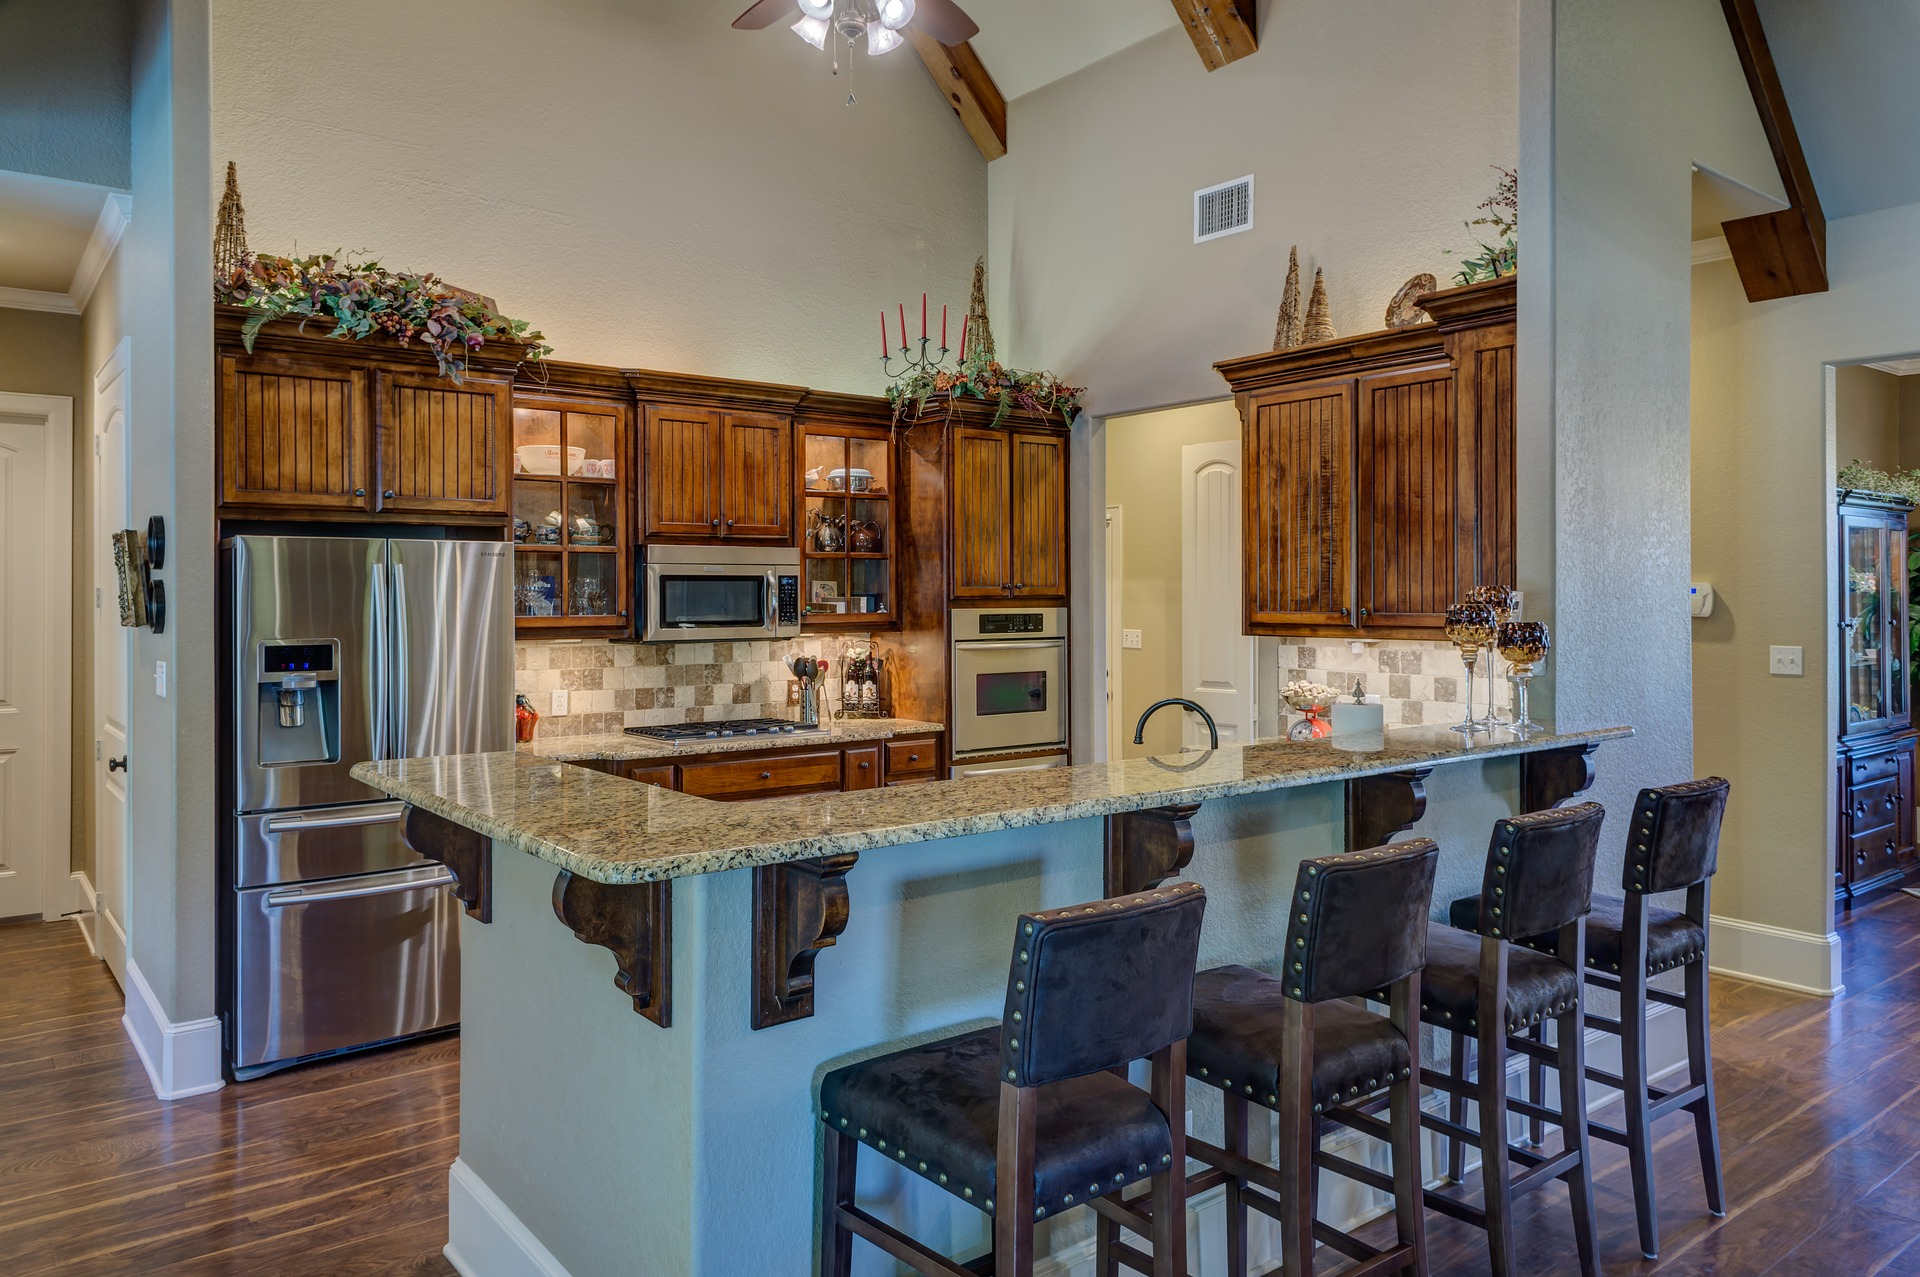 kitchen-interior-2046665_1920